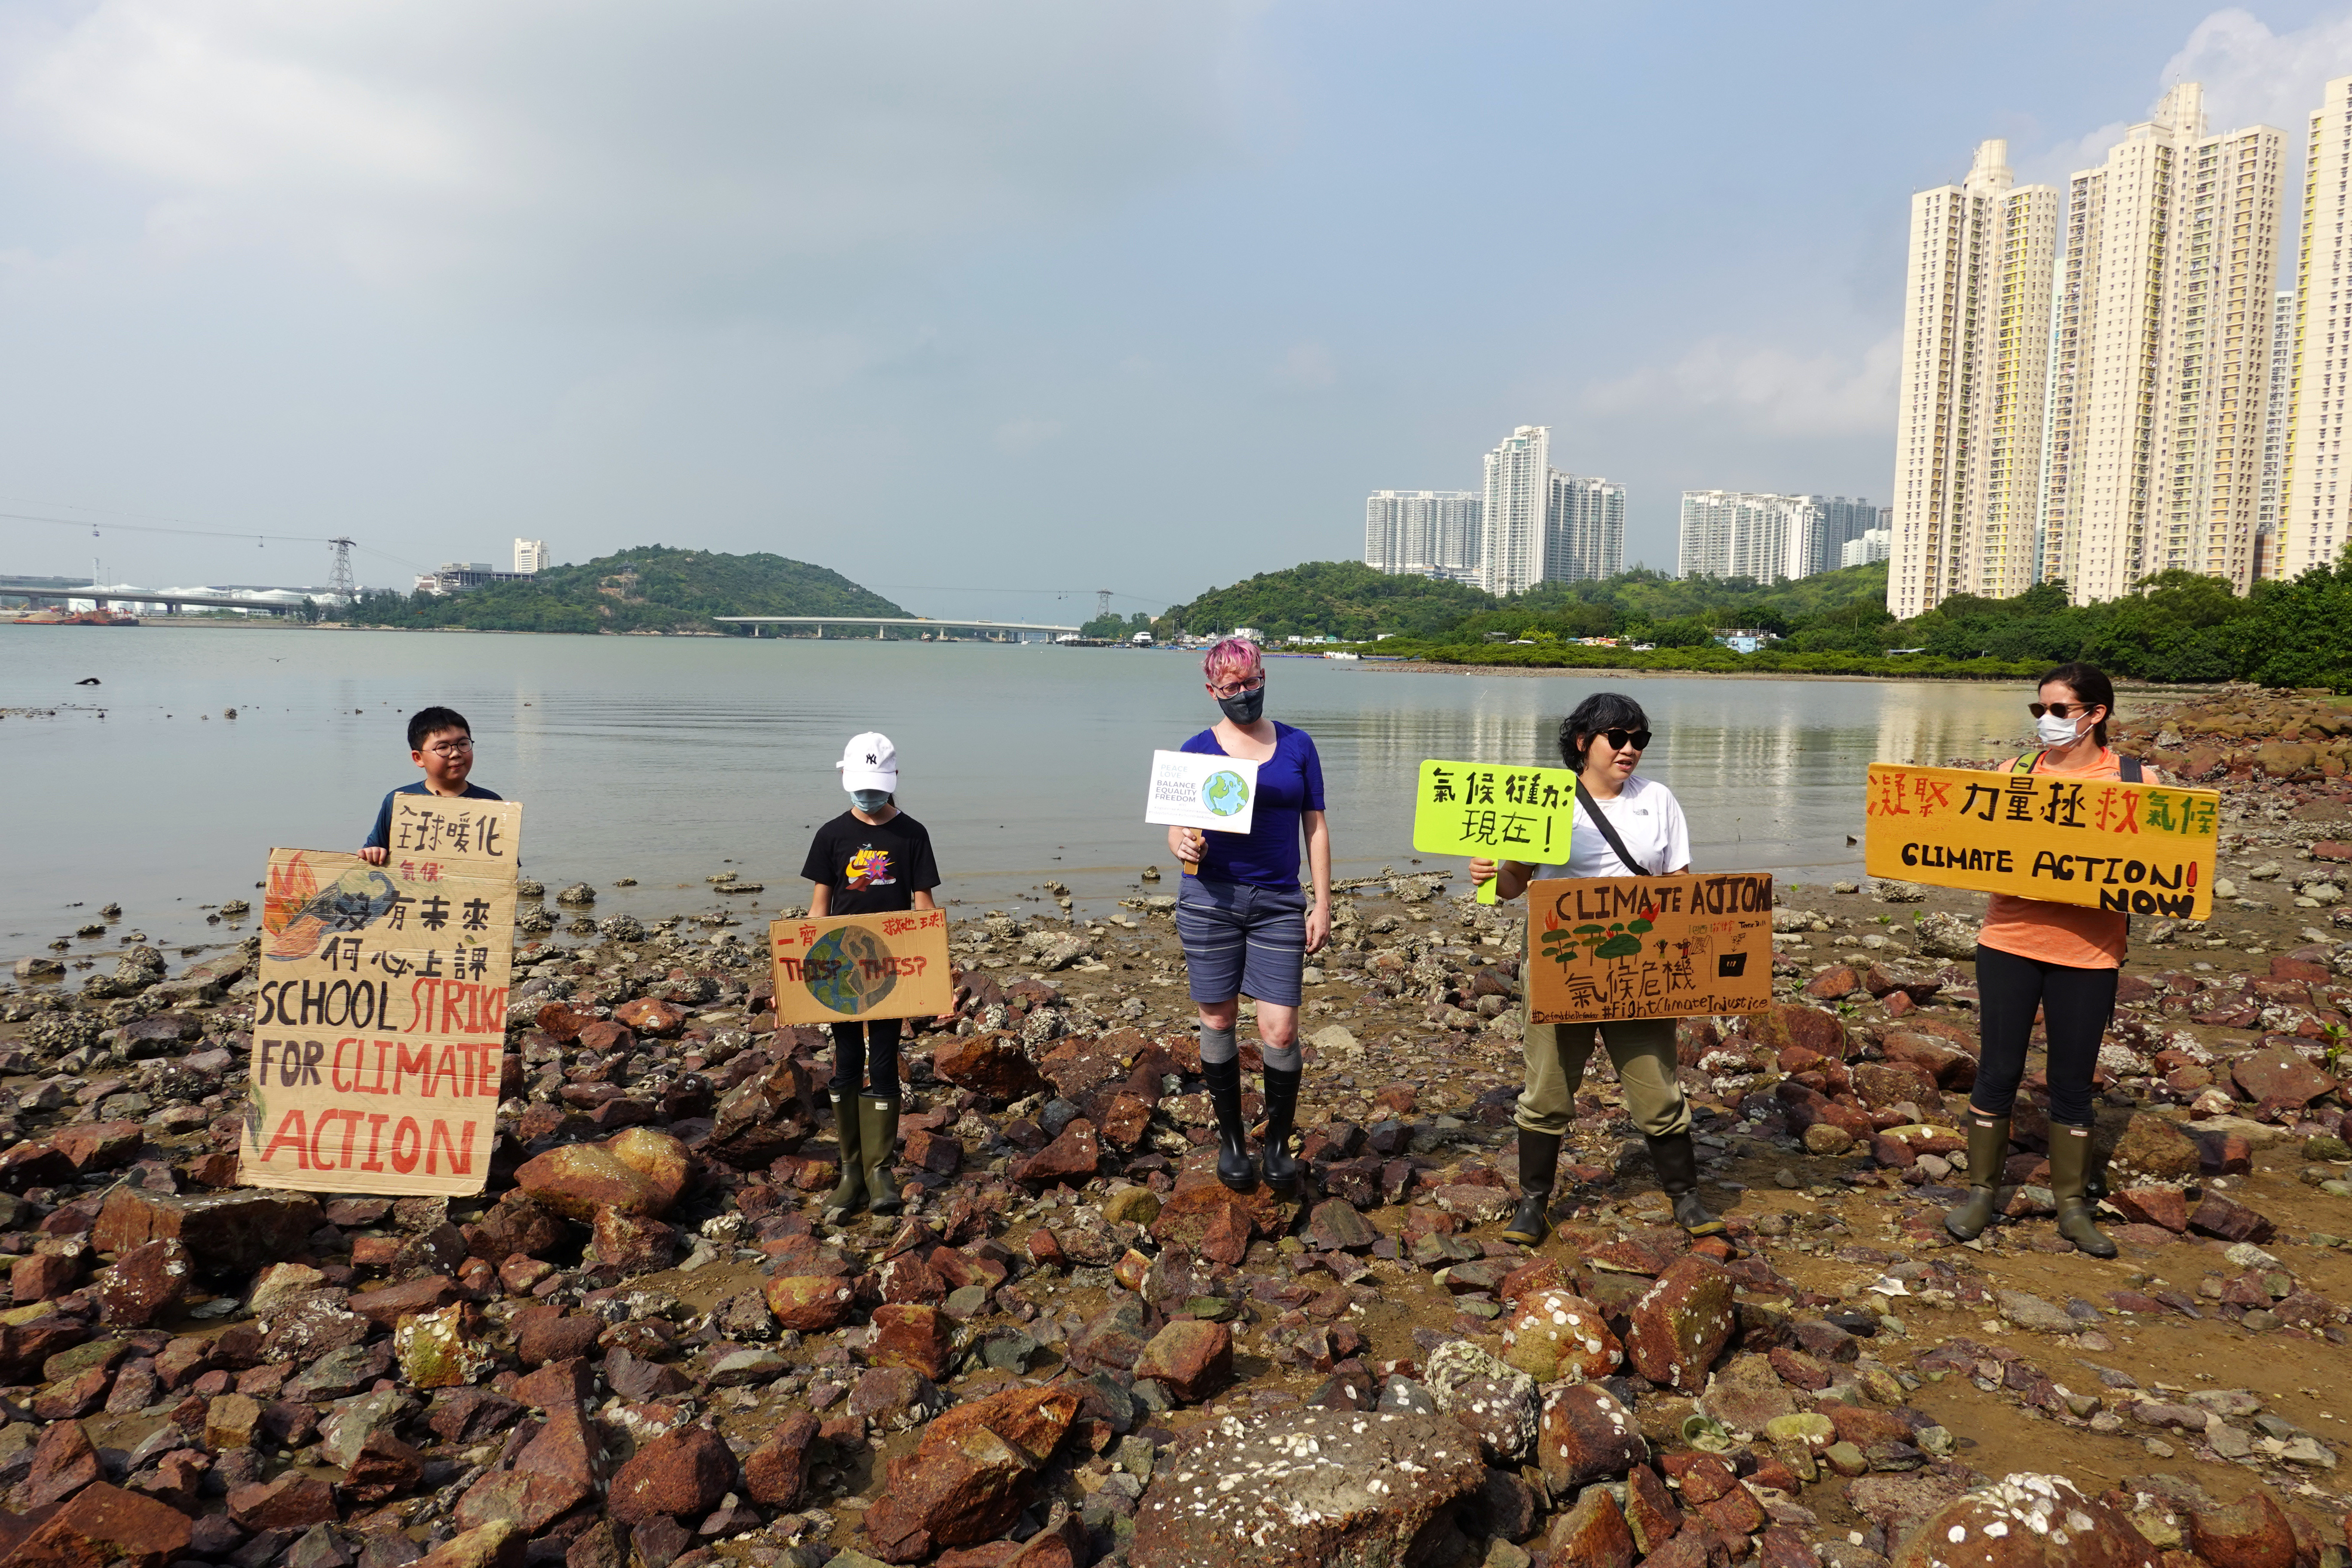 Lance Lau, 11, Elise Hon, 11, Rose Netherton, 36, and other climate activists hold placards as they pose for pictures during a climate strike and a beach clean-up at San Tau Beach on Lantau island in Hong Kong, China September 25, 2020. REUTERS/Joyce Zhou - RC2P5J9CIIMS